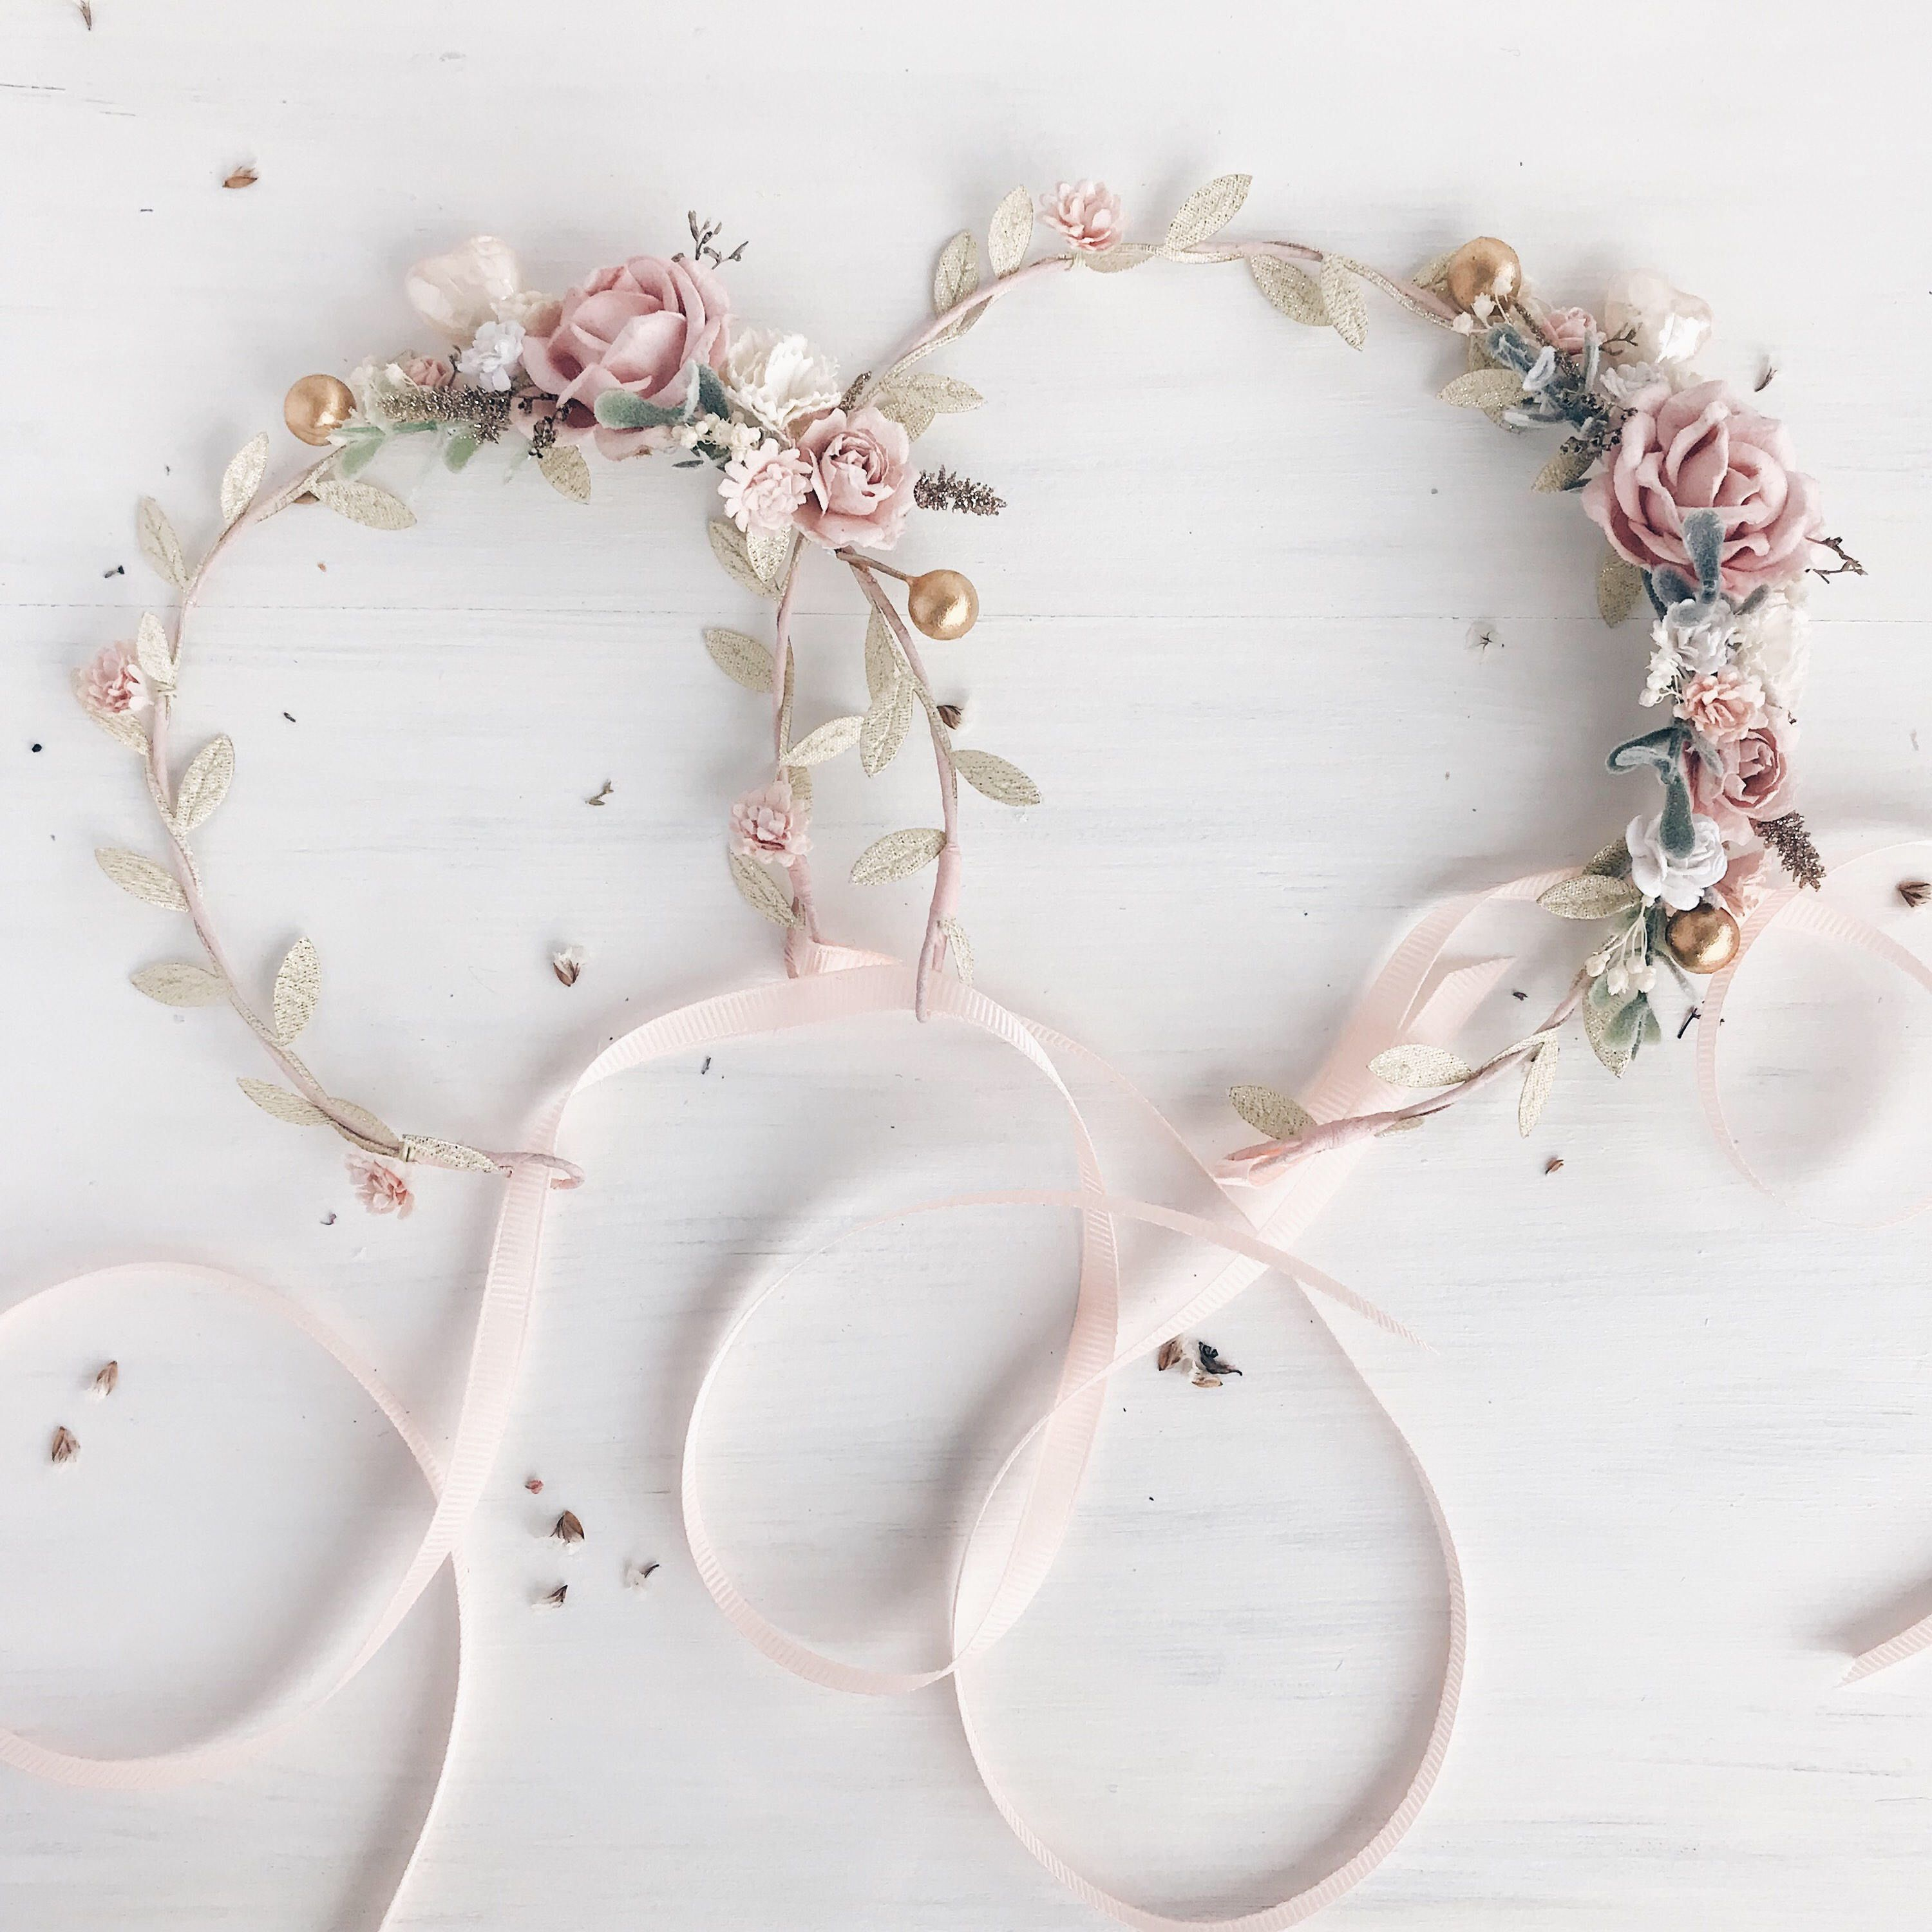 Blush flower crown, Mommy and me, Blush gold flower crown, Birthday crown, Blush child flower crown, Child crown, Maternity #crowntiara